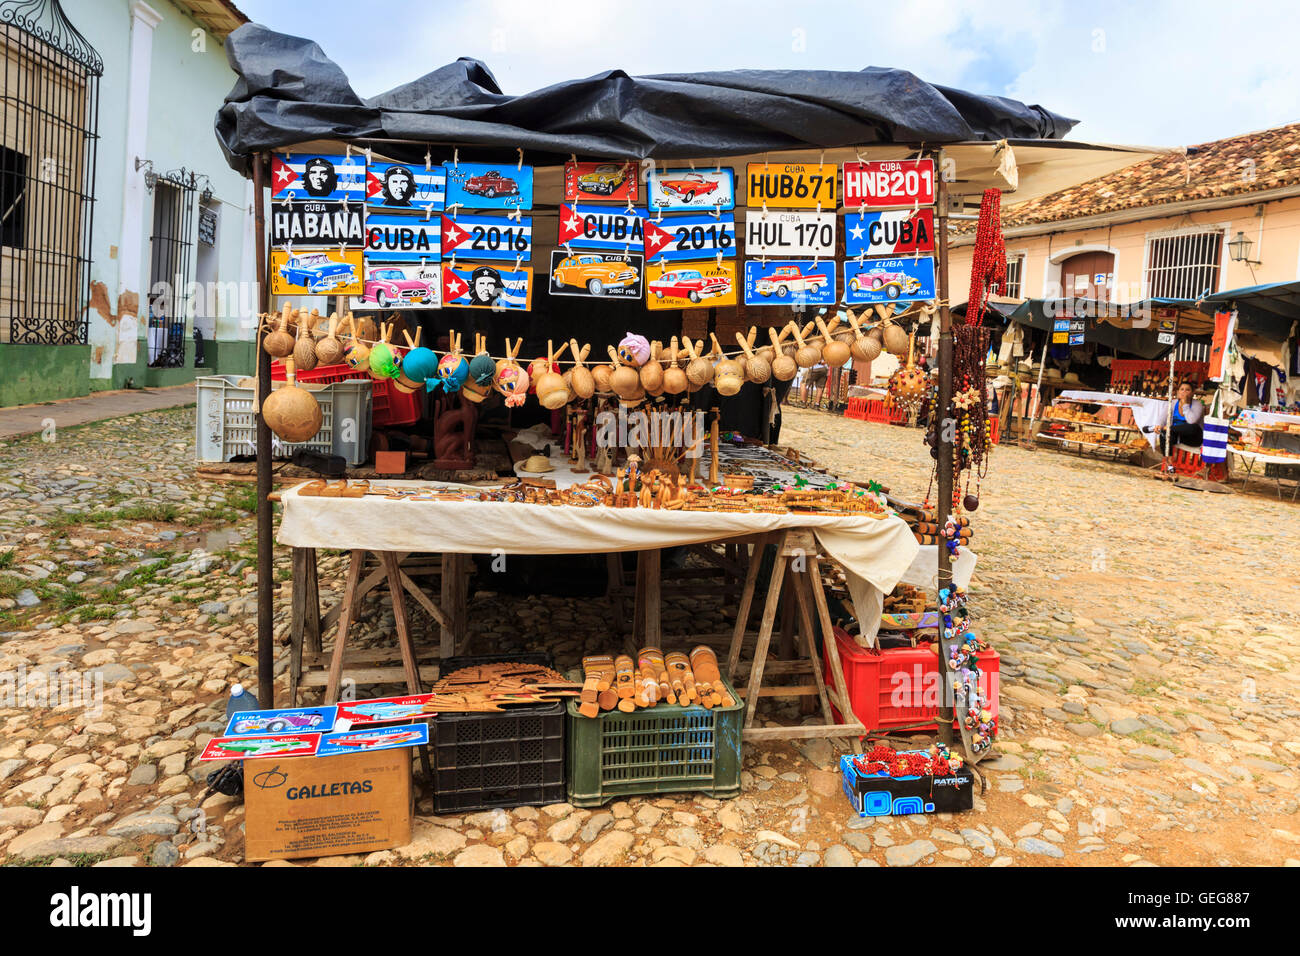 Souvenir Gift Stall Selling Handicrafts At Street Market In A Stock